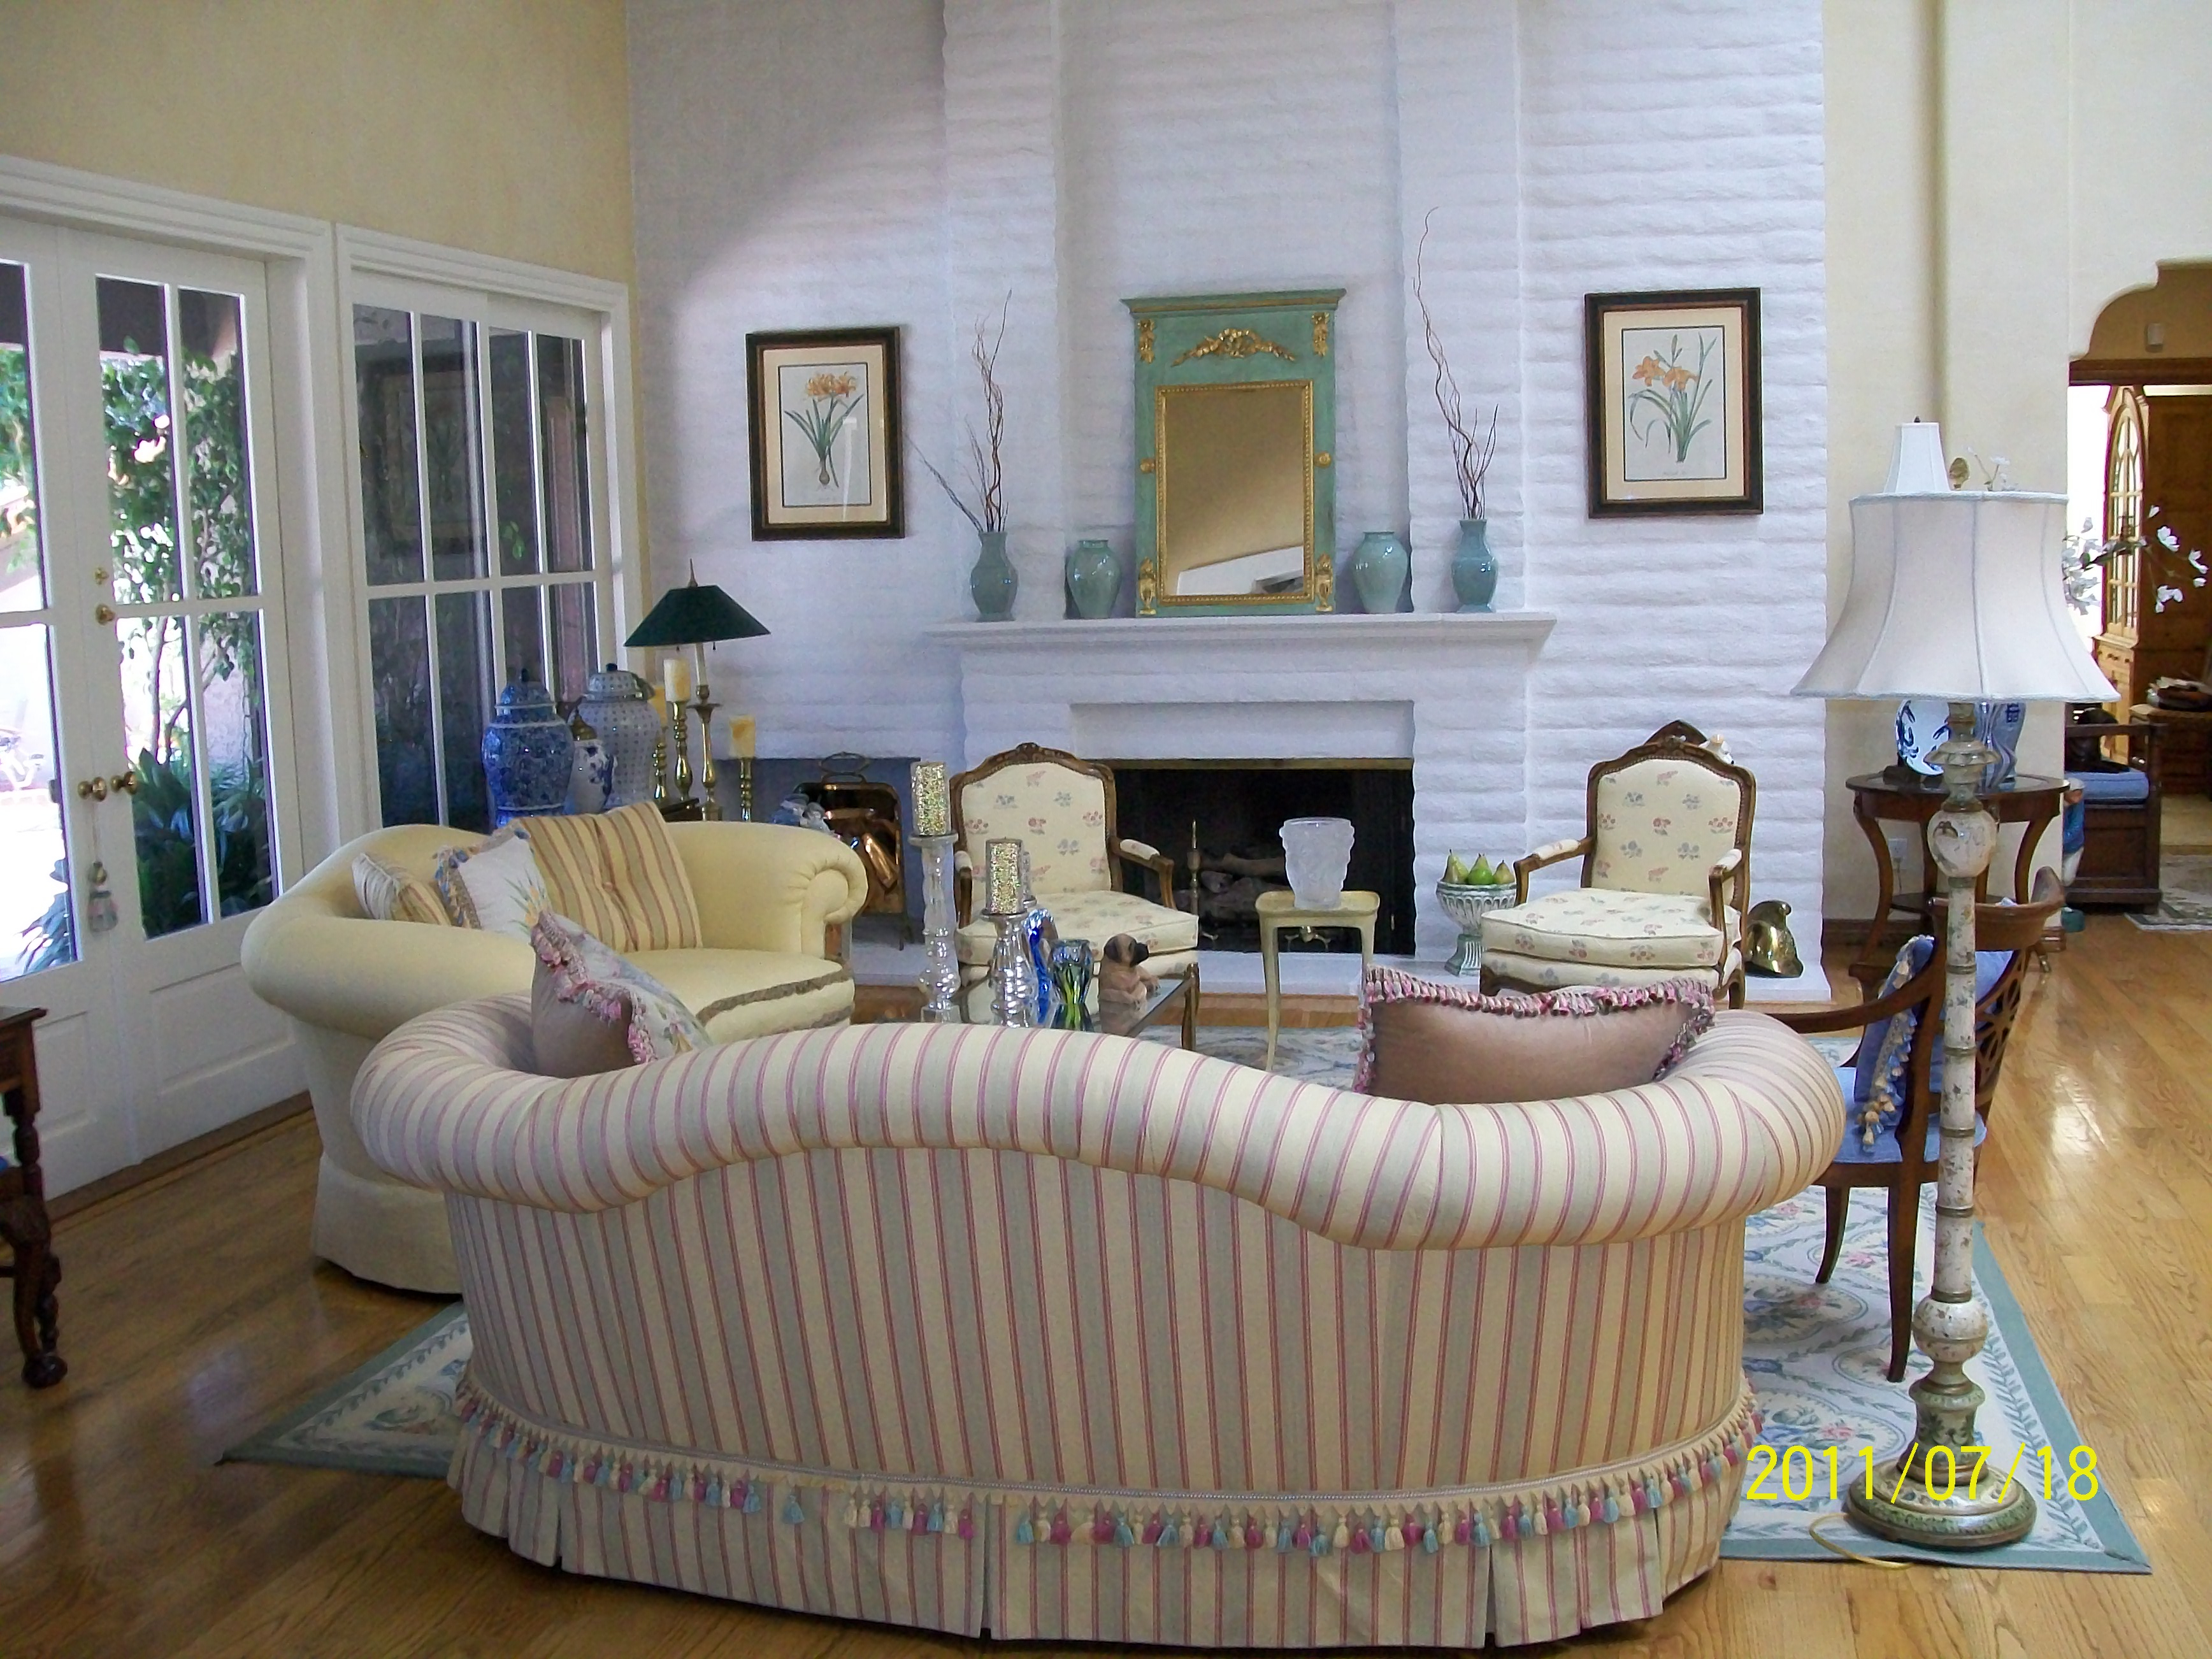 La Costa Upholstery – Serving San Diego County Within Escondido Sofa Chairs (Image 15 of 25)